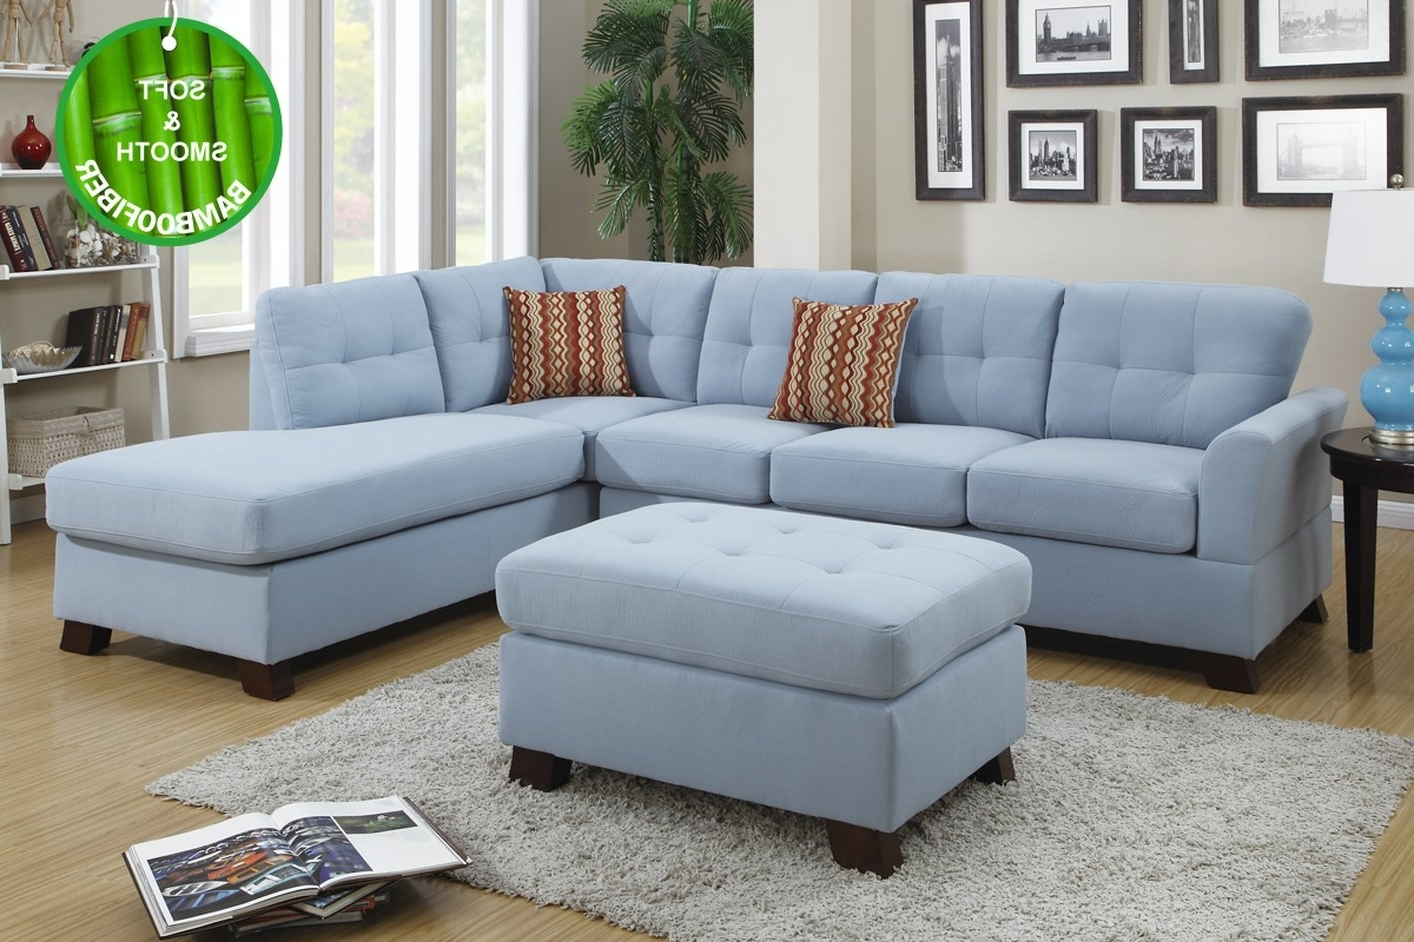 Good Blue Sectional Sofa 45 Modern Sofa Inspiration With Blue In Most Current Blue Sectional Sofas (View 6 of 20)